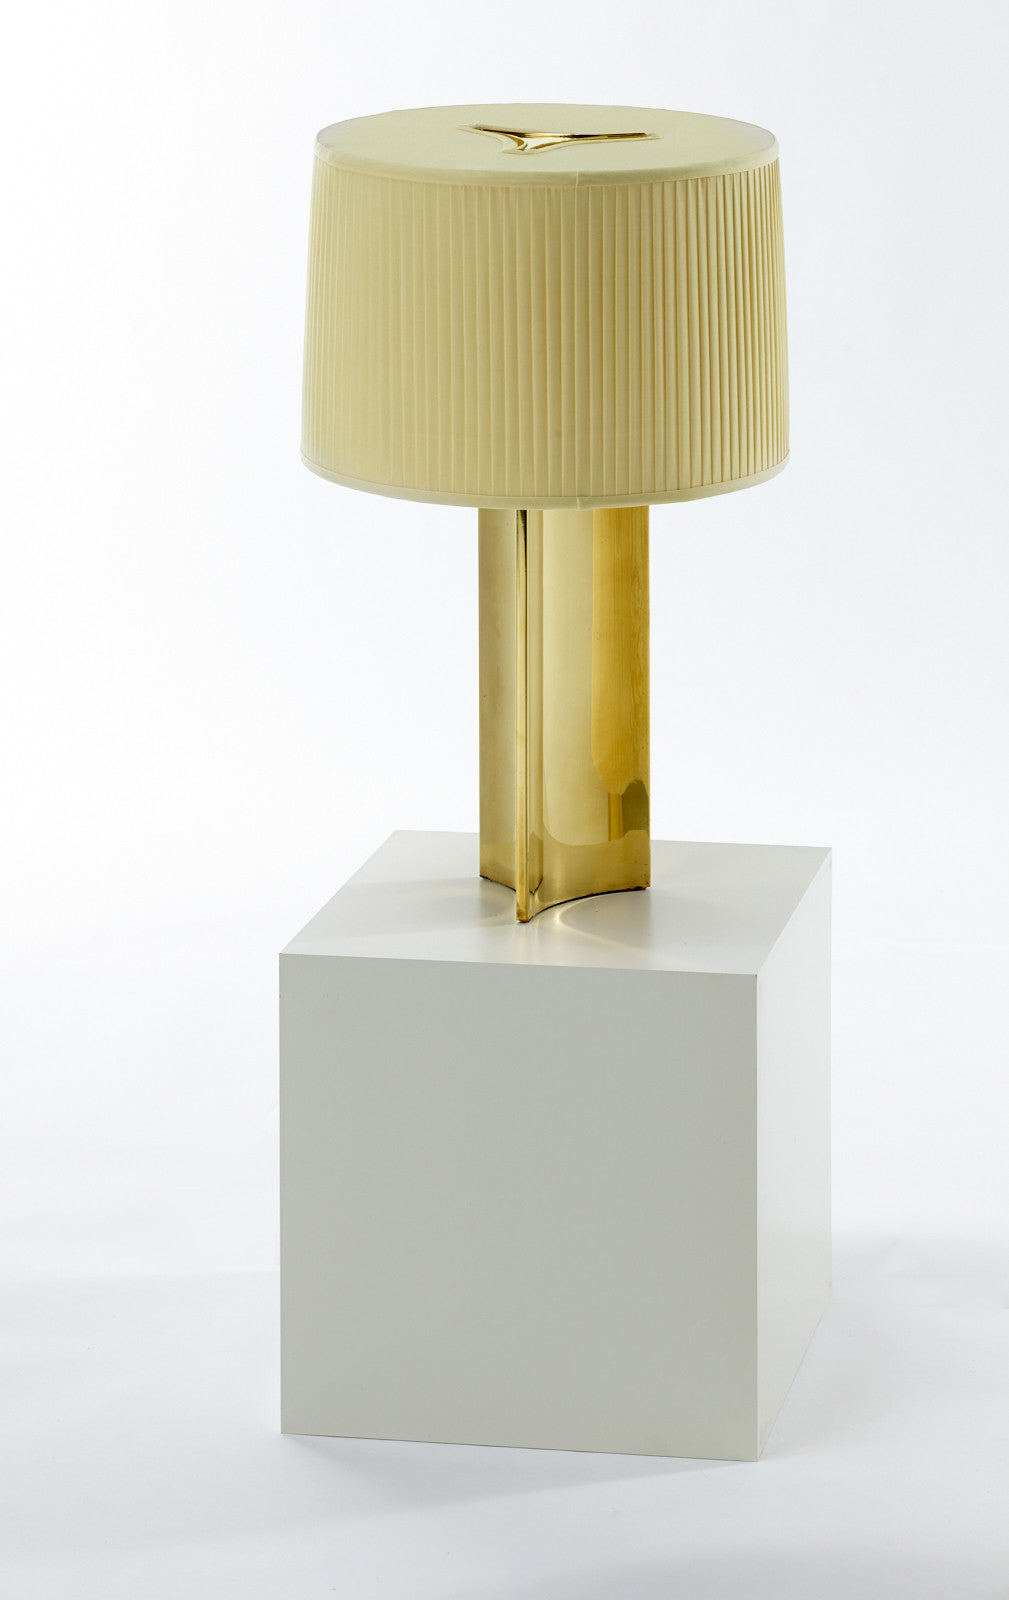 Paavo Tynell Pair of Rare Table Lamps, Model 10405, 1940s - The Exchange Int